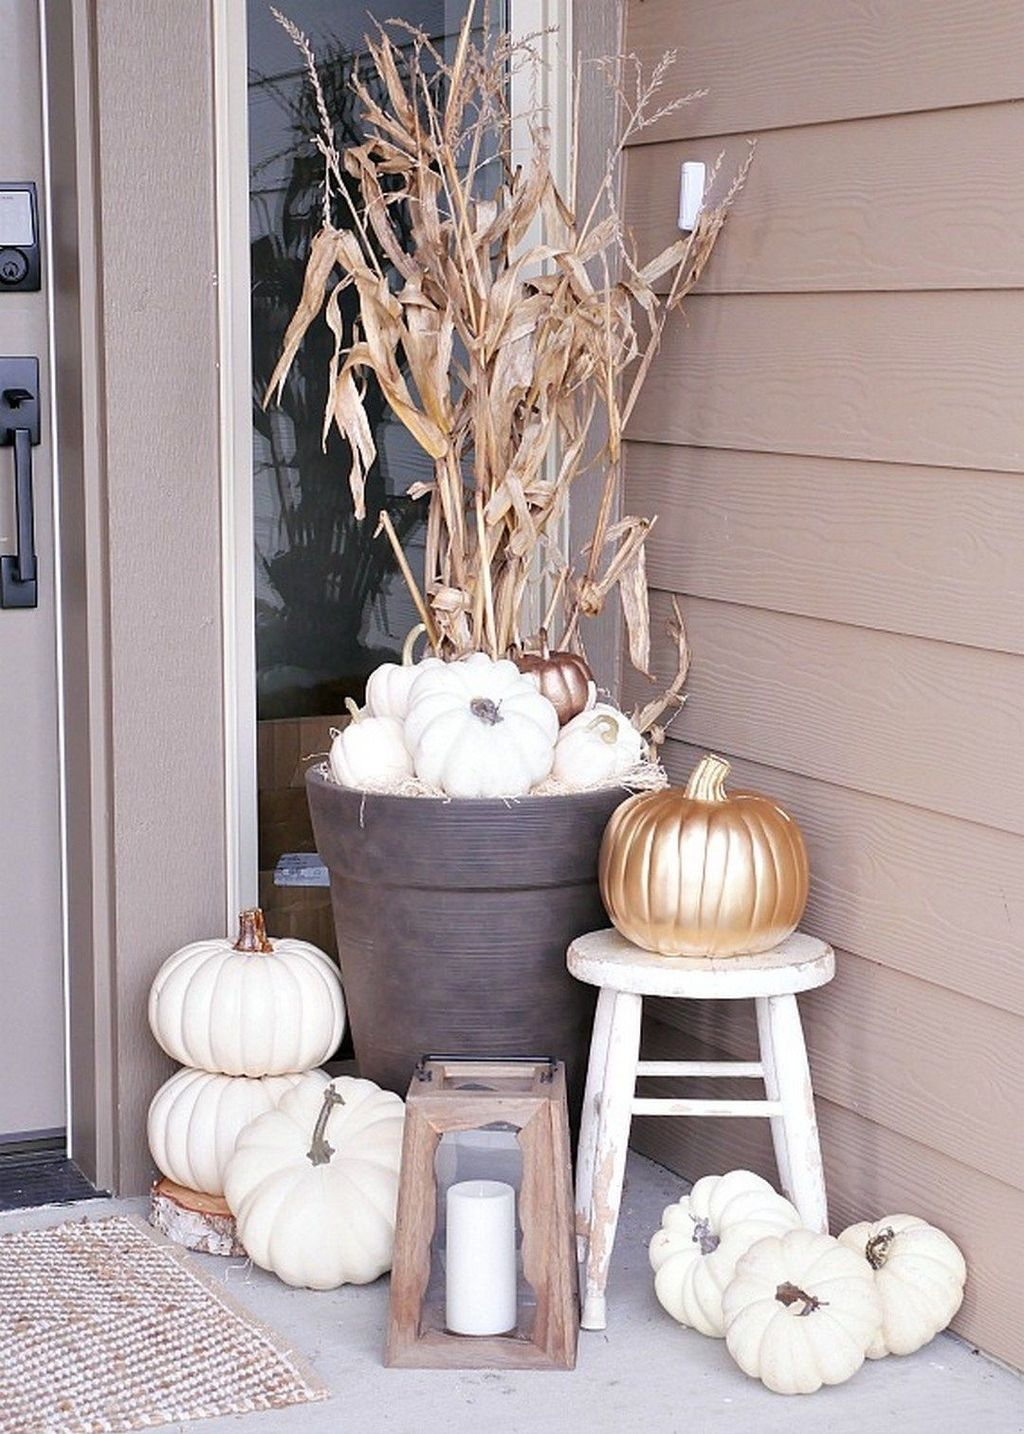 Amazing Front Porch Fall Decor Ideas That You Never Seen Before 15